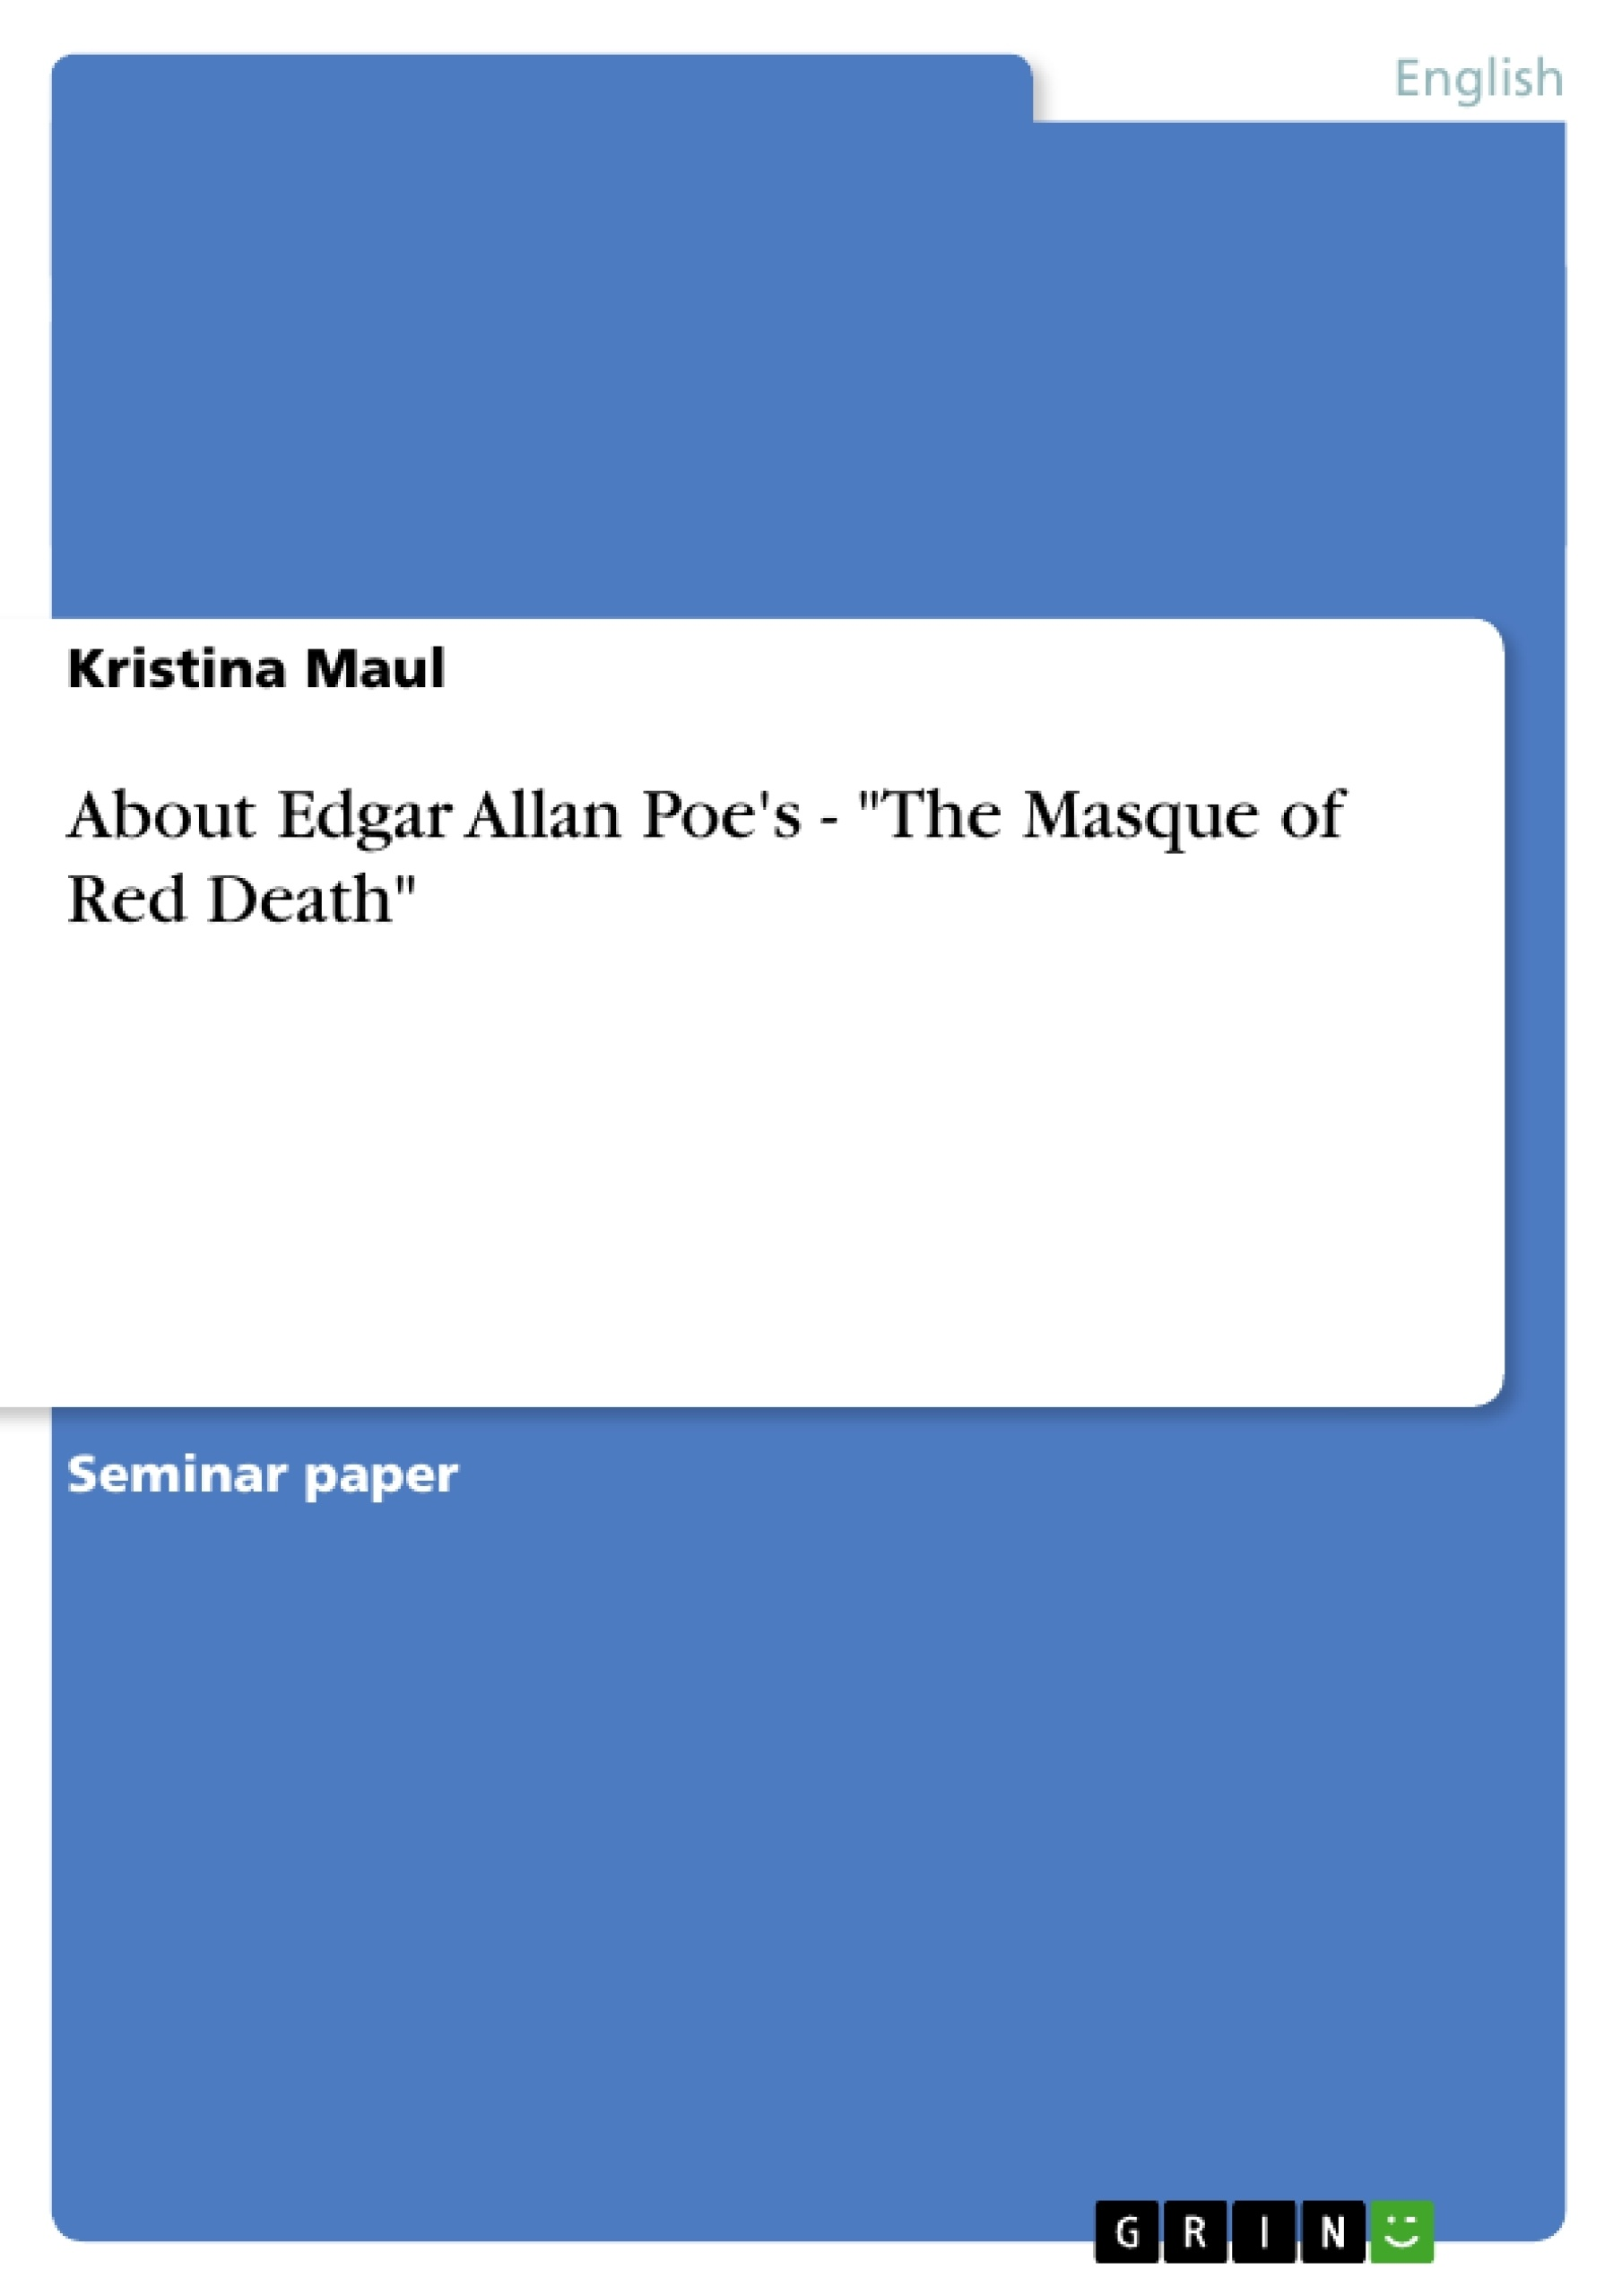 about edgar allan poe s the masque of red death publish your upload your own papers earn money and win an iphone 7